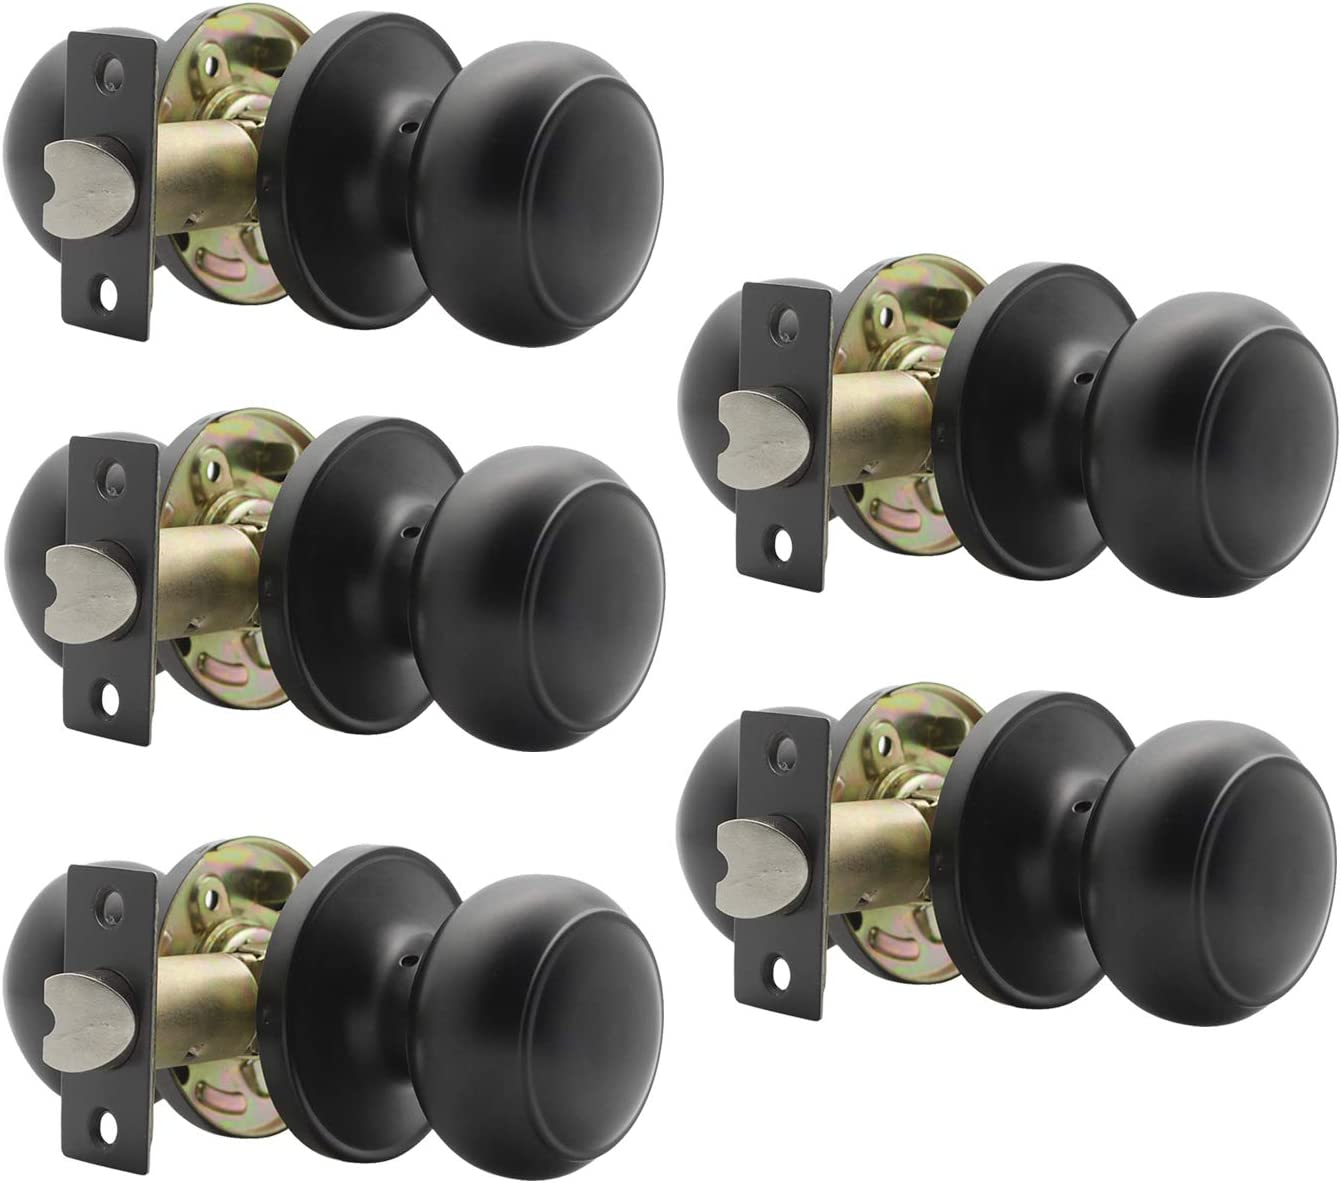 Gobrico Flat Ball Black Passage Door Locksets Hall and Closet Door Knobs Without Key 5Pack